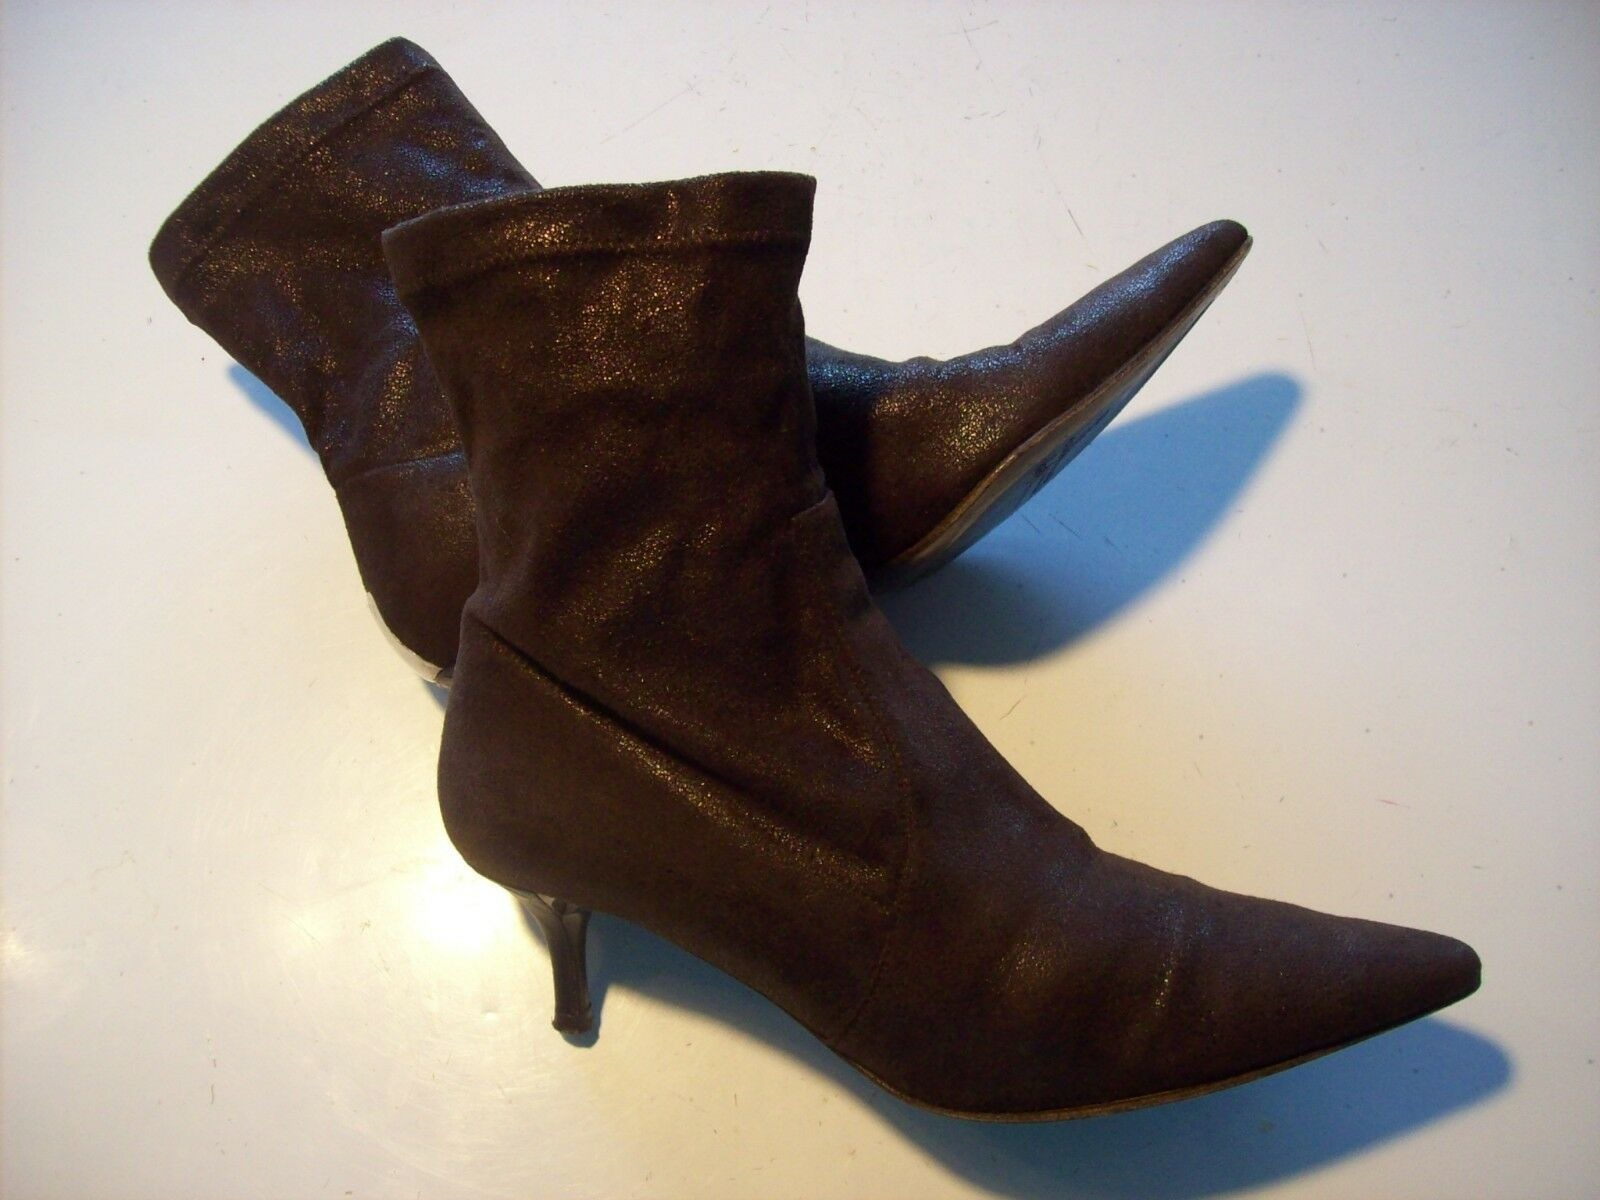 Donald Pliner Eppie Brown Stretch Above Ankle Boots Heels Shoes Size 8 @ cLOSeT